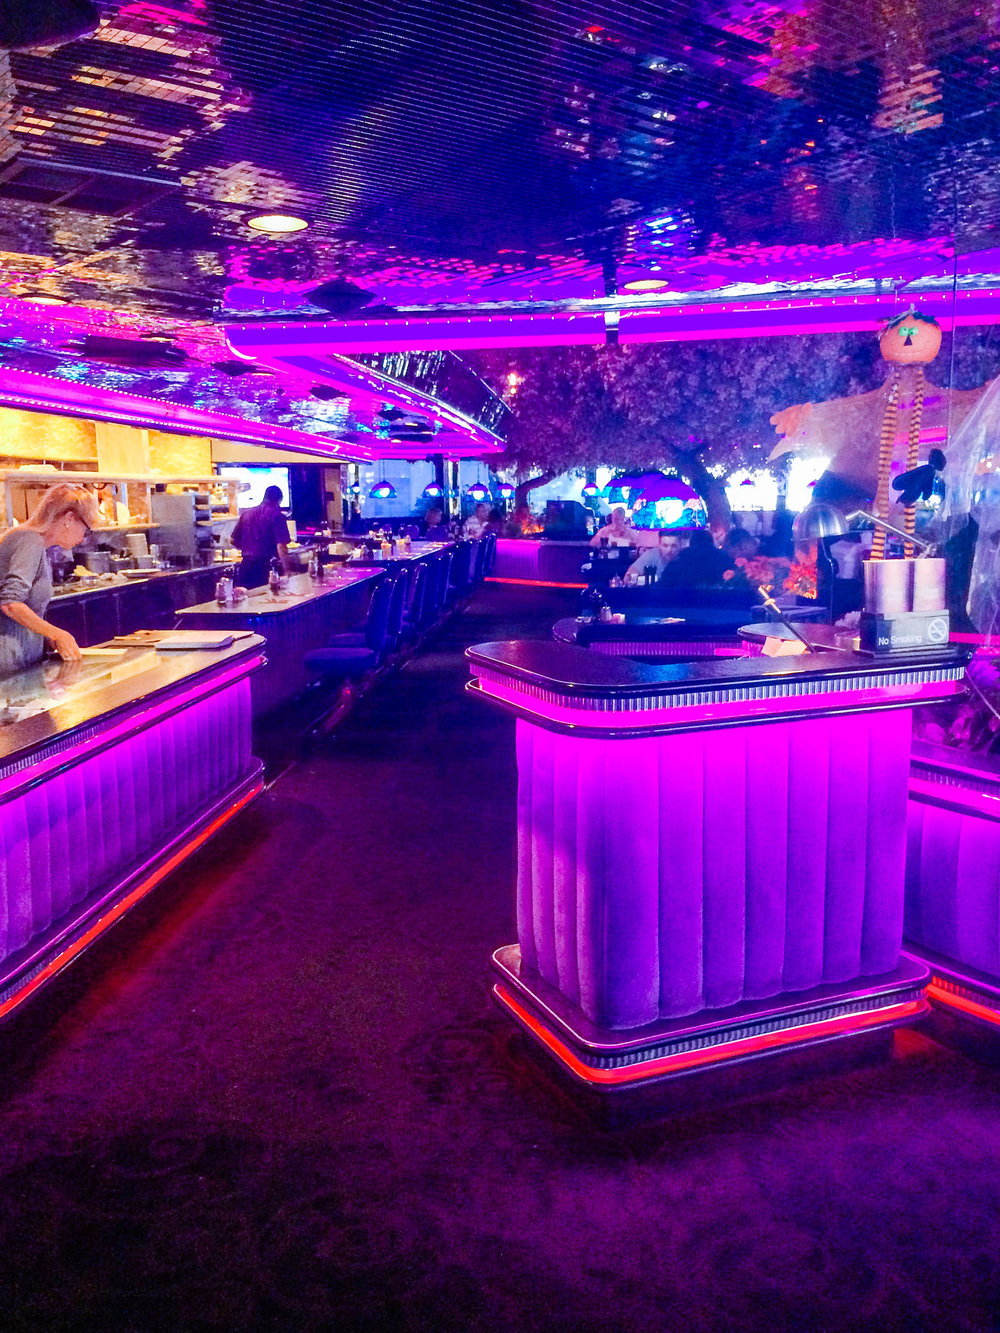 21 Things to Do in Downtown Las Vegas other than Gambling